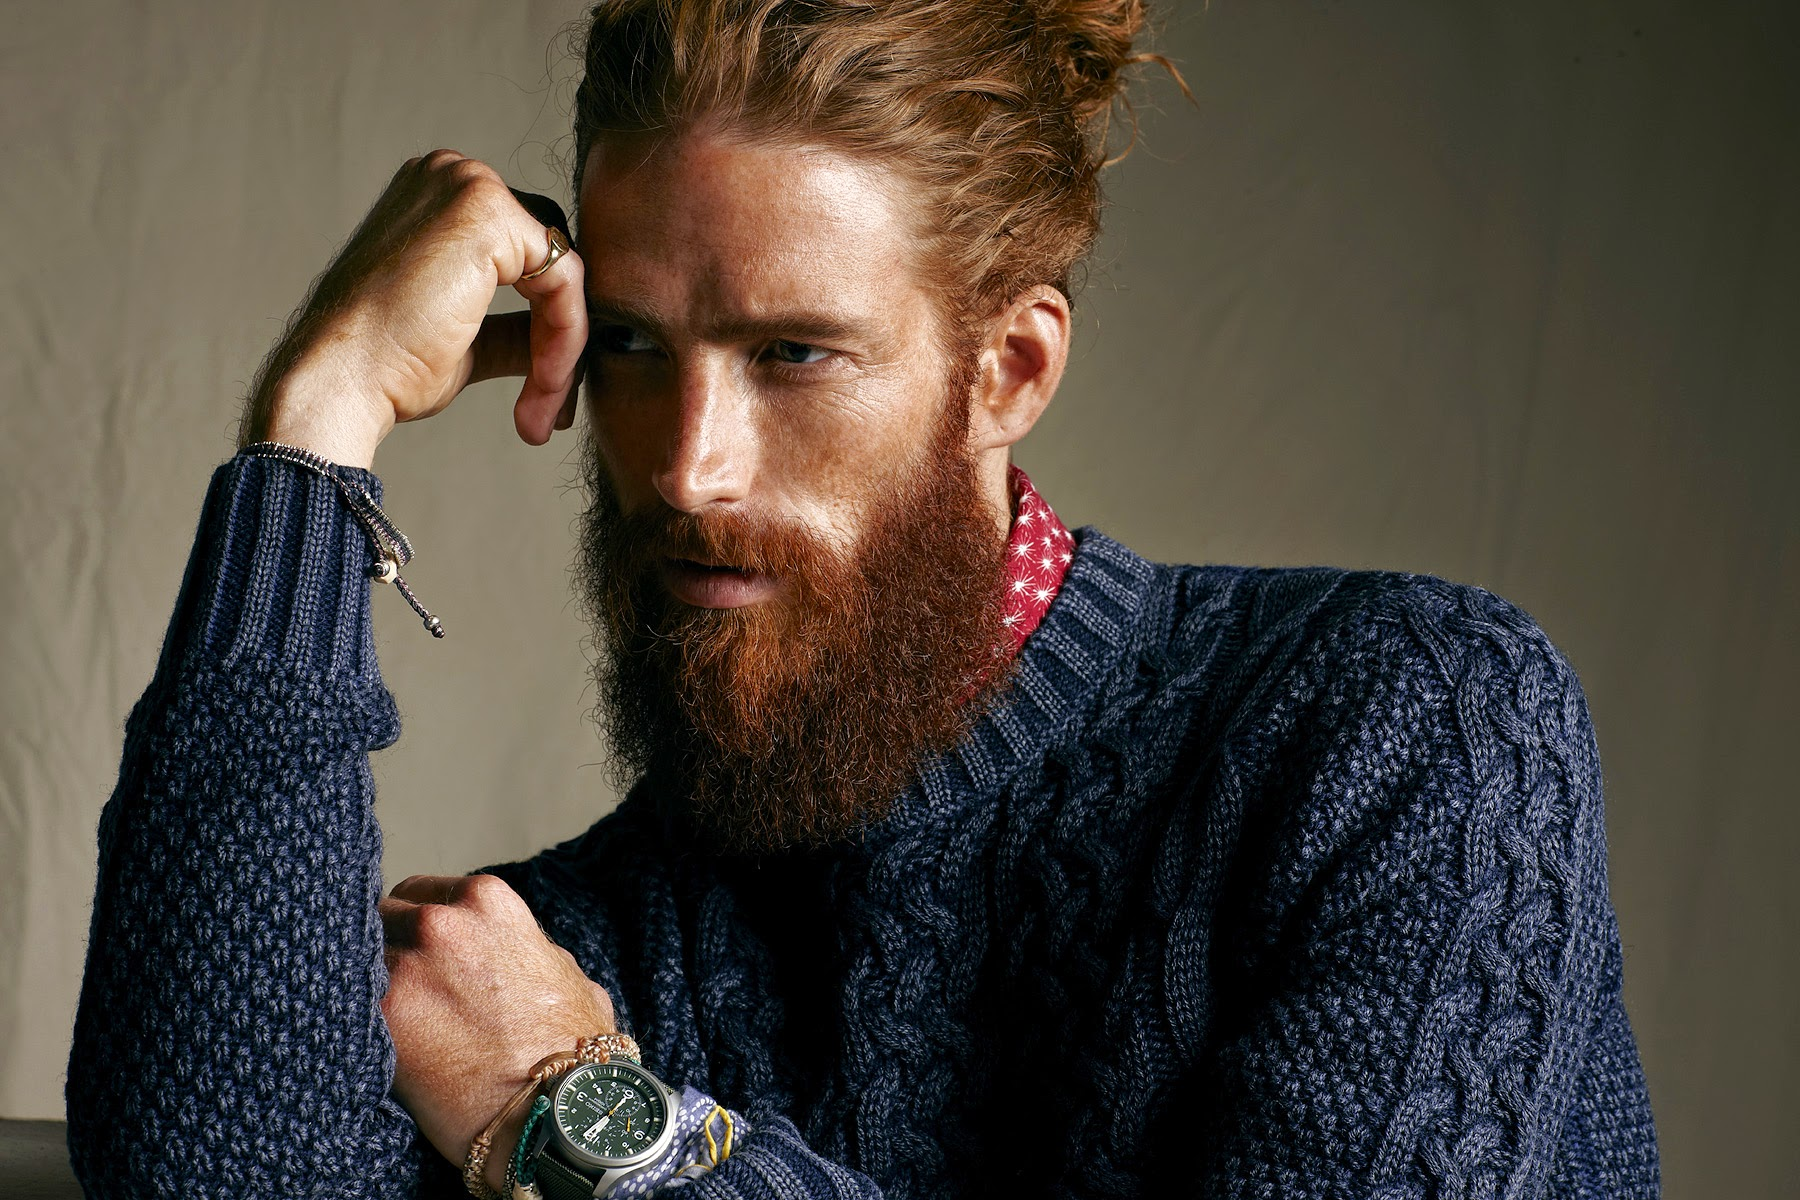 15 Reasons You Should Date A Man With A Beard - OOTD Magazine